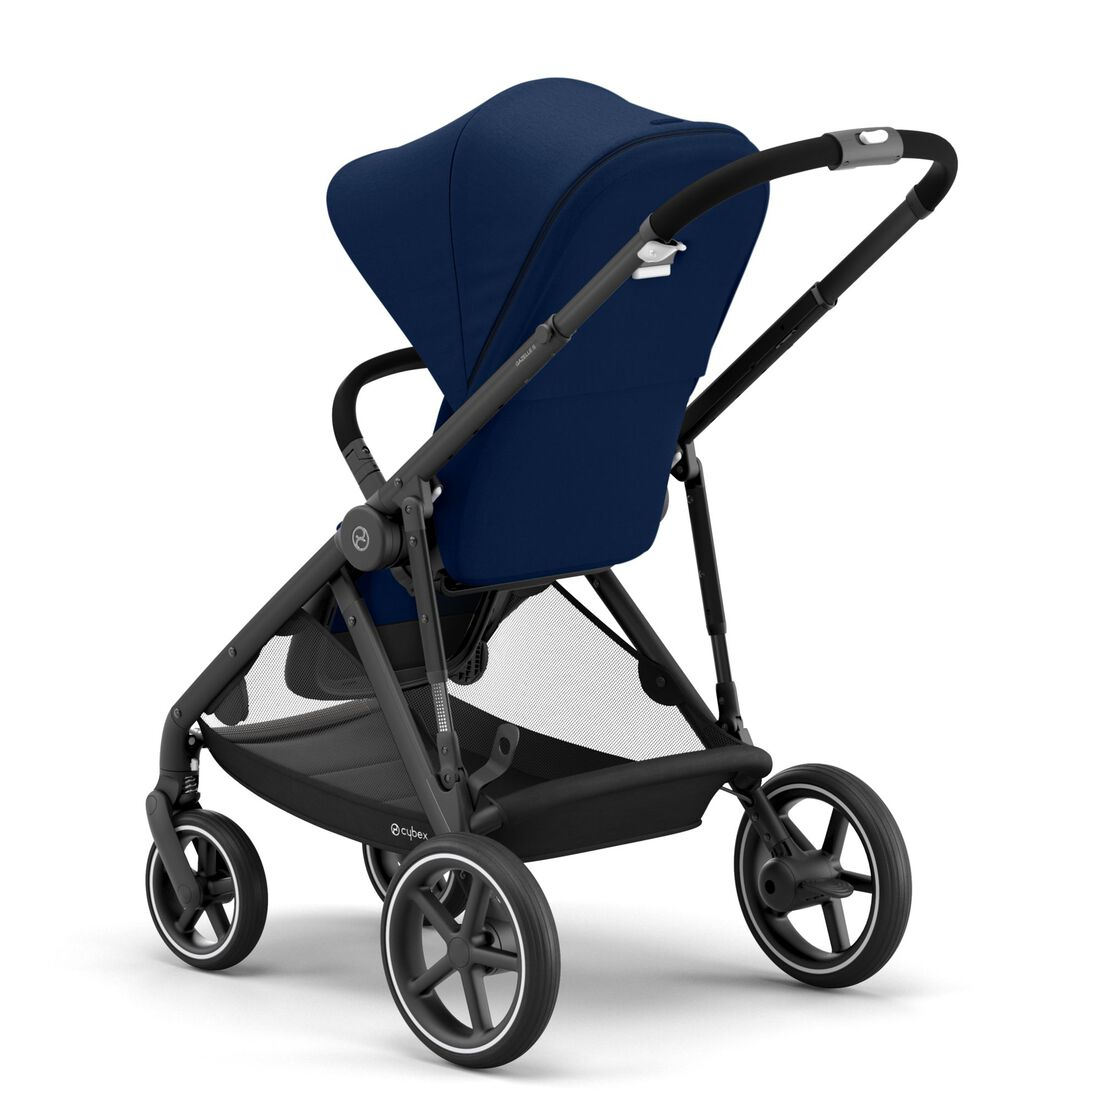 CYBEX Gazelle S - Navy Blue (Schwarzer Rahmen) in Navy Blue (Black Frame) large Bild 6